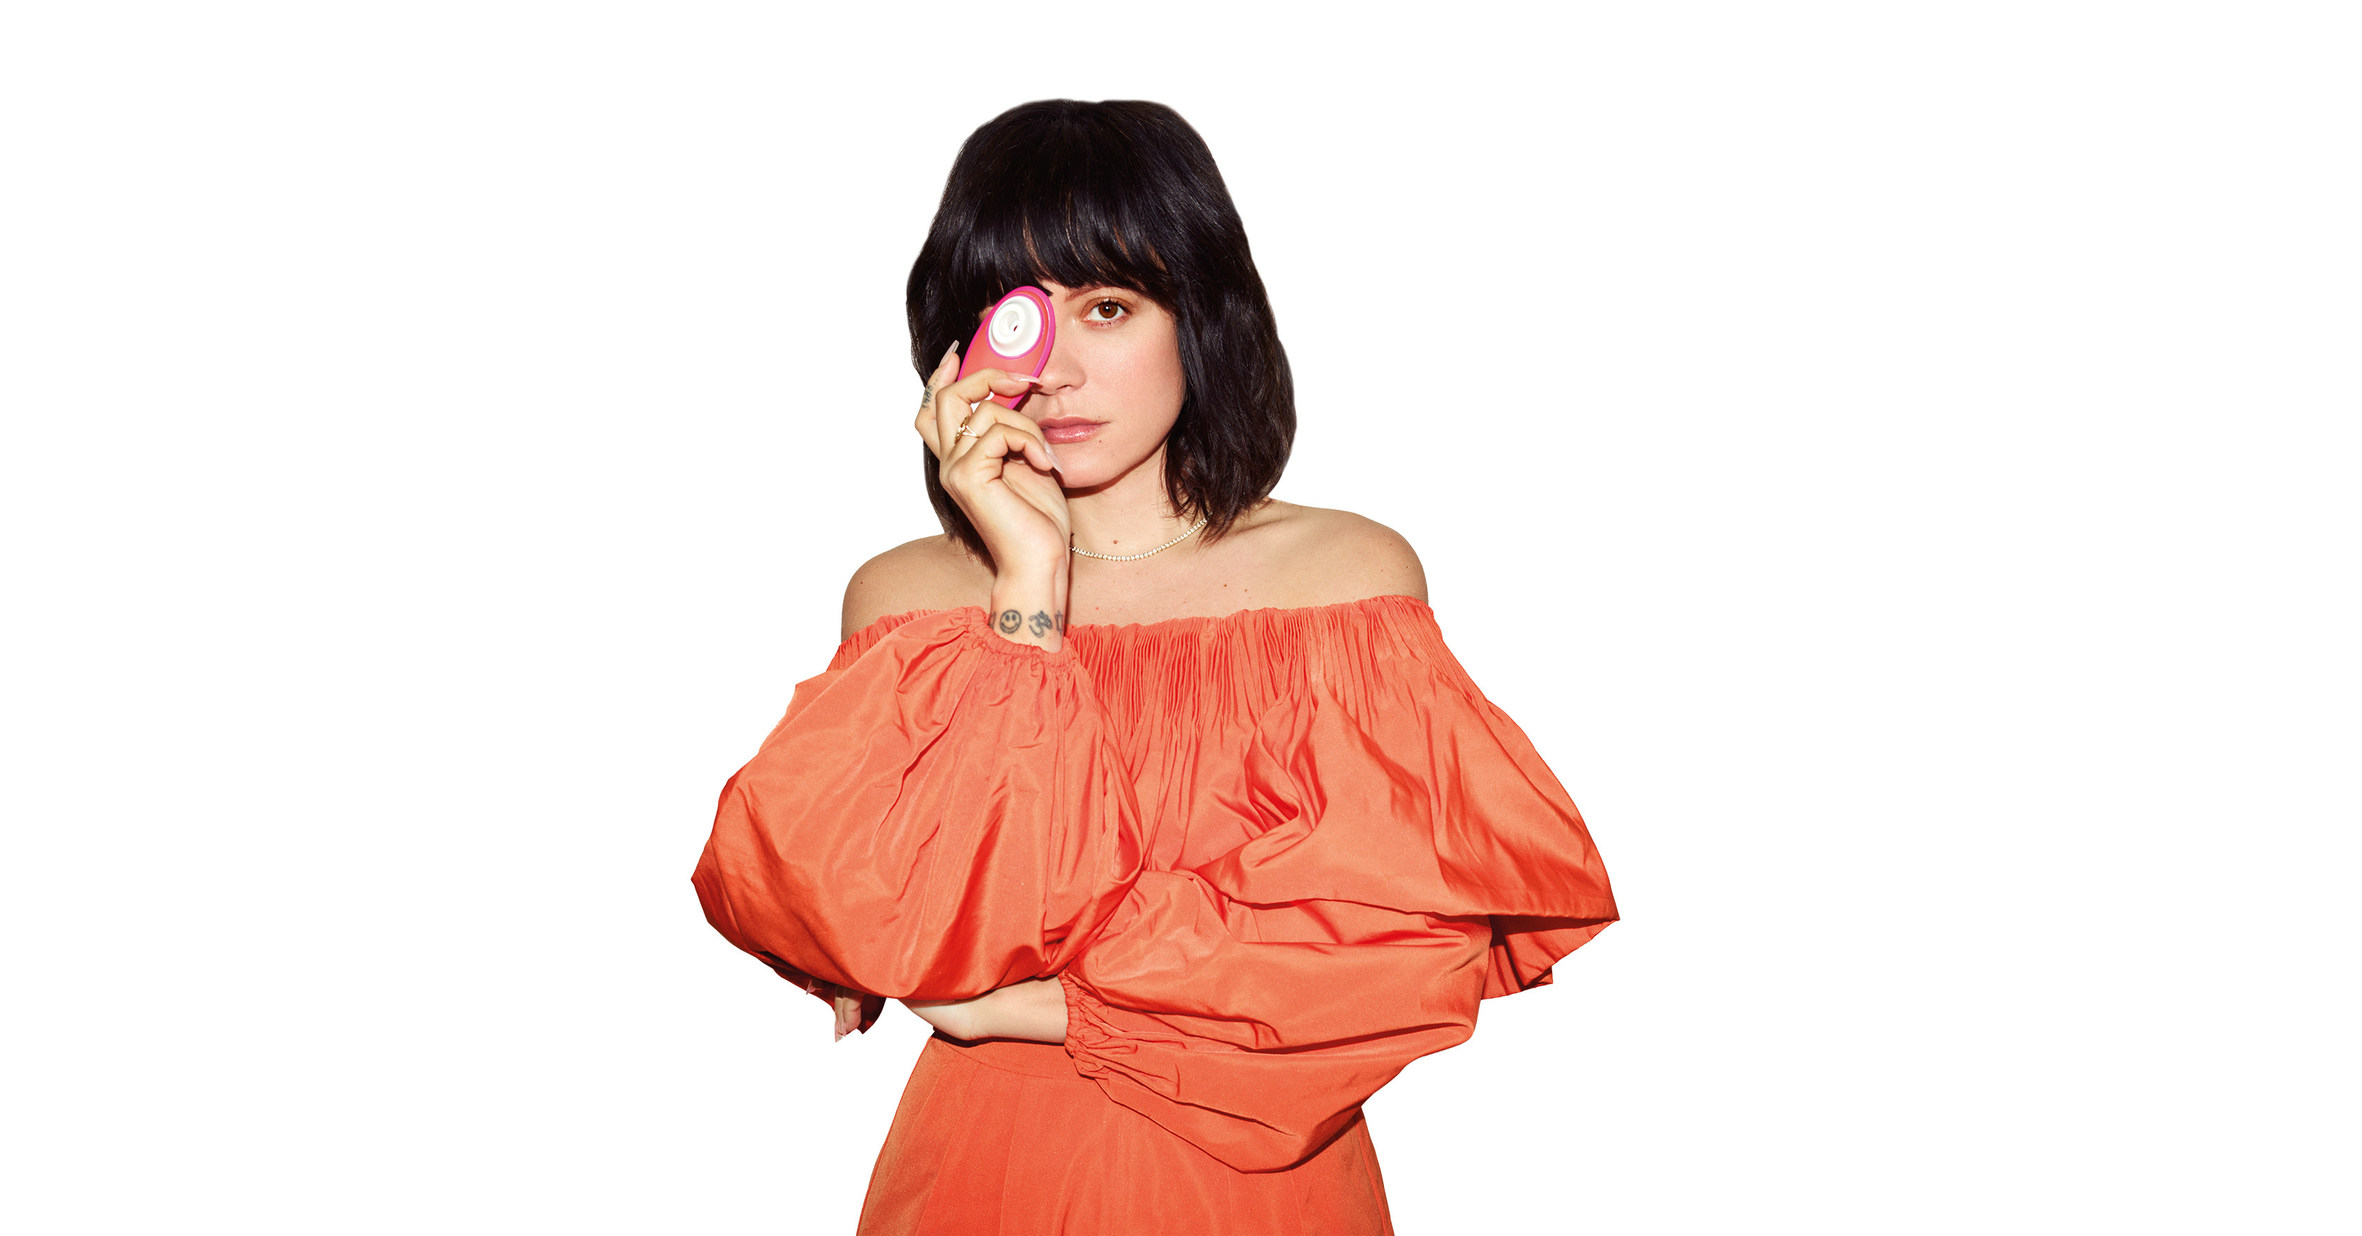 Lily Allen collaborates with Womanizer to champion female